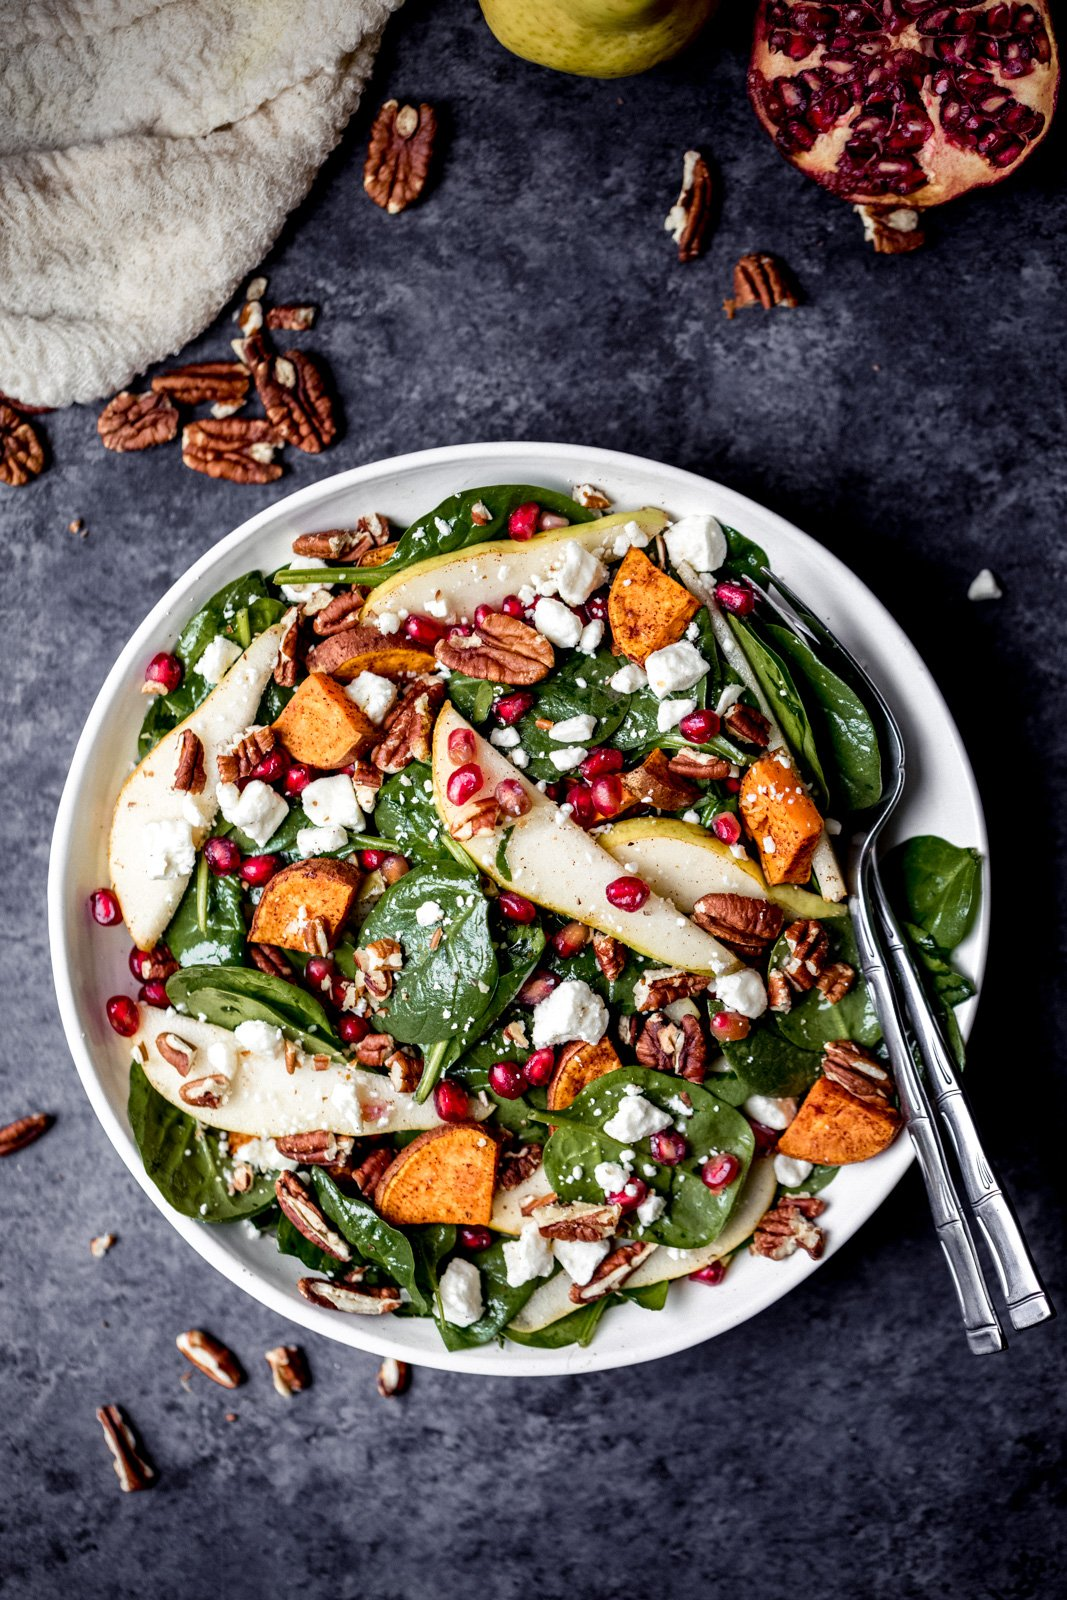 pomegranate spinach salad with pears and sweet potatoes in a bowl with two spoons